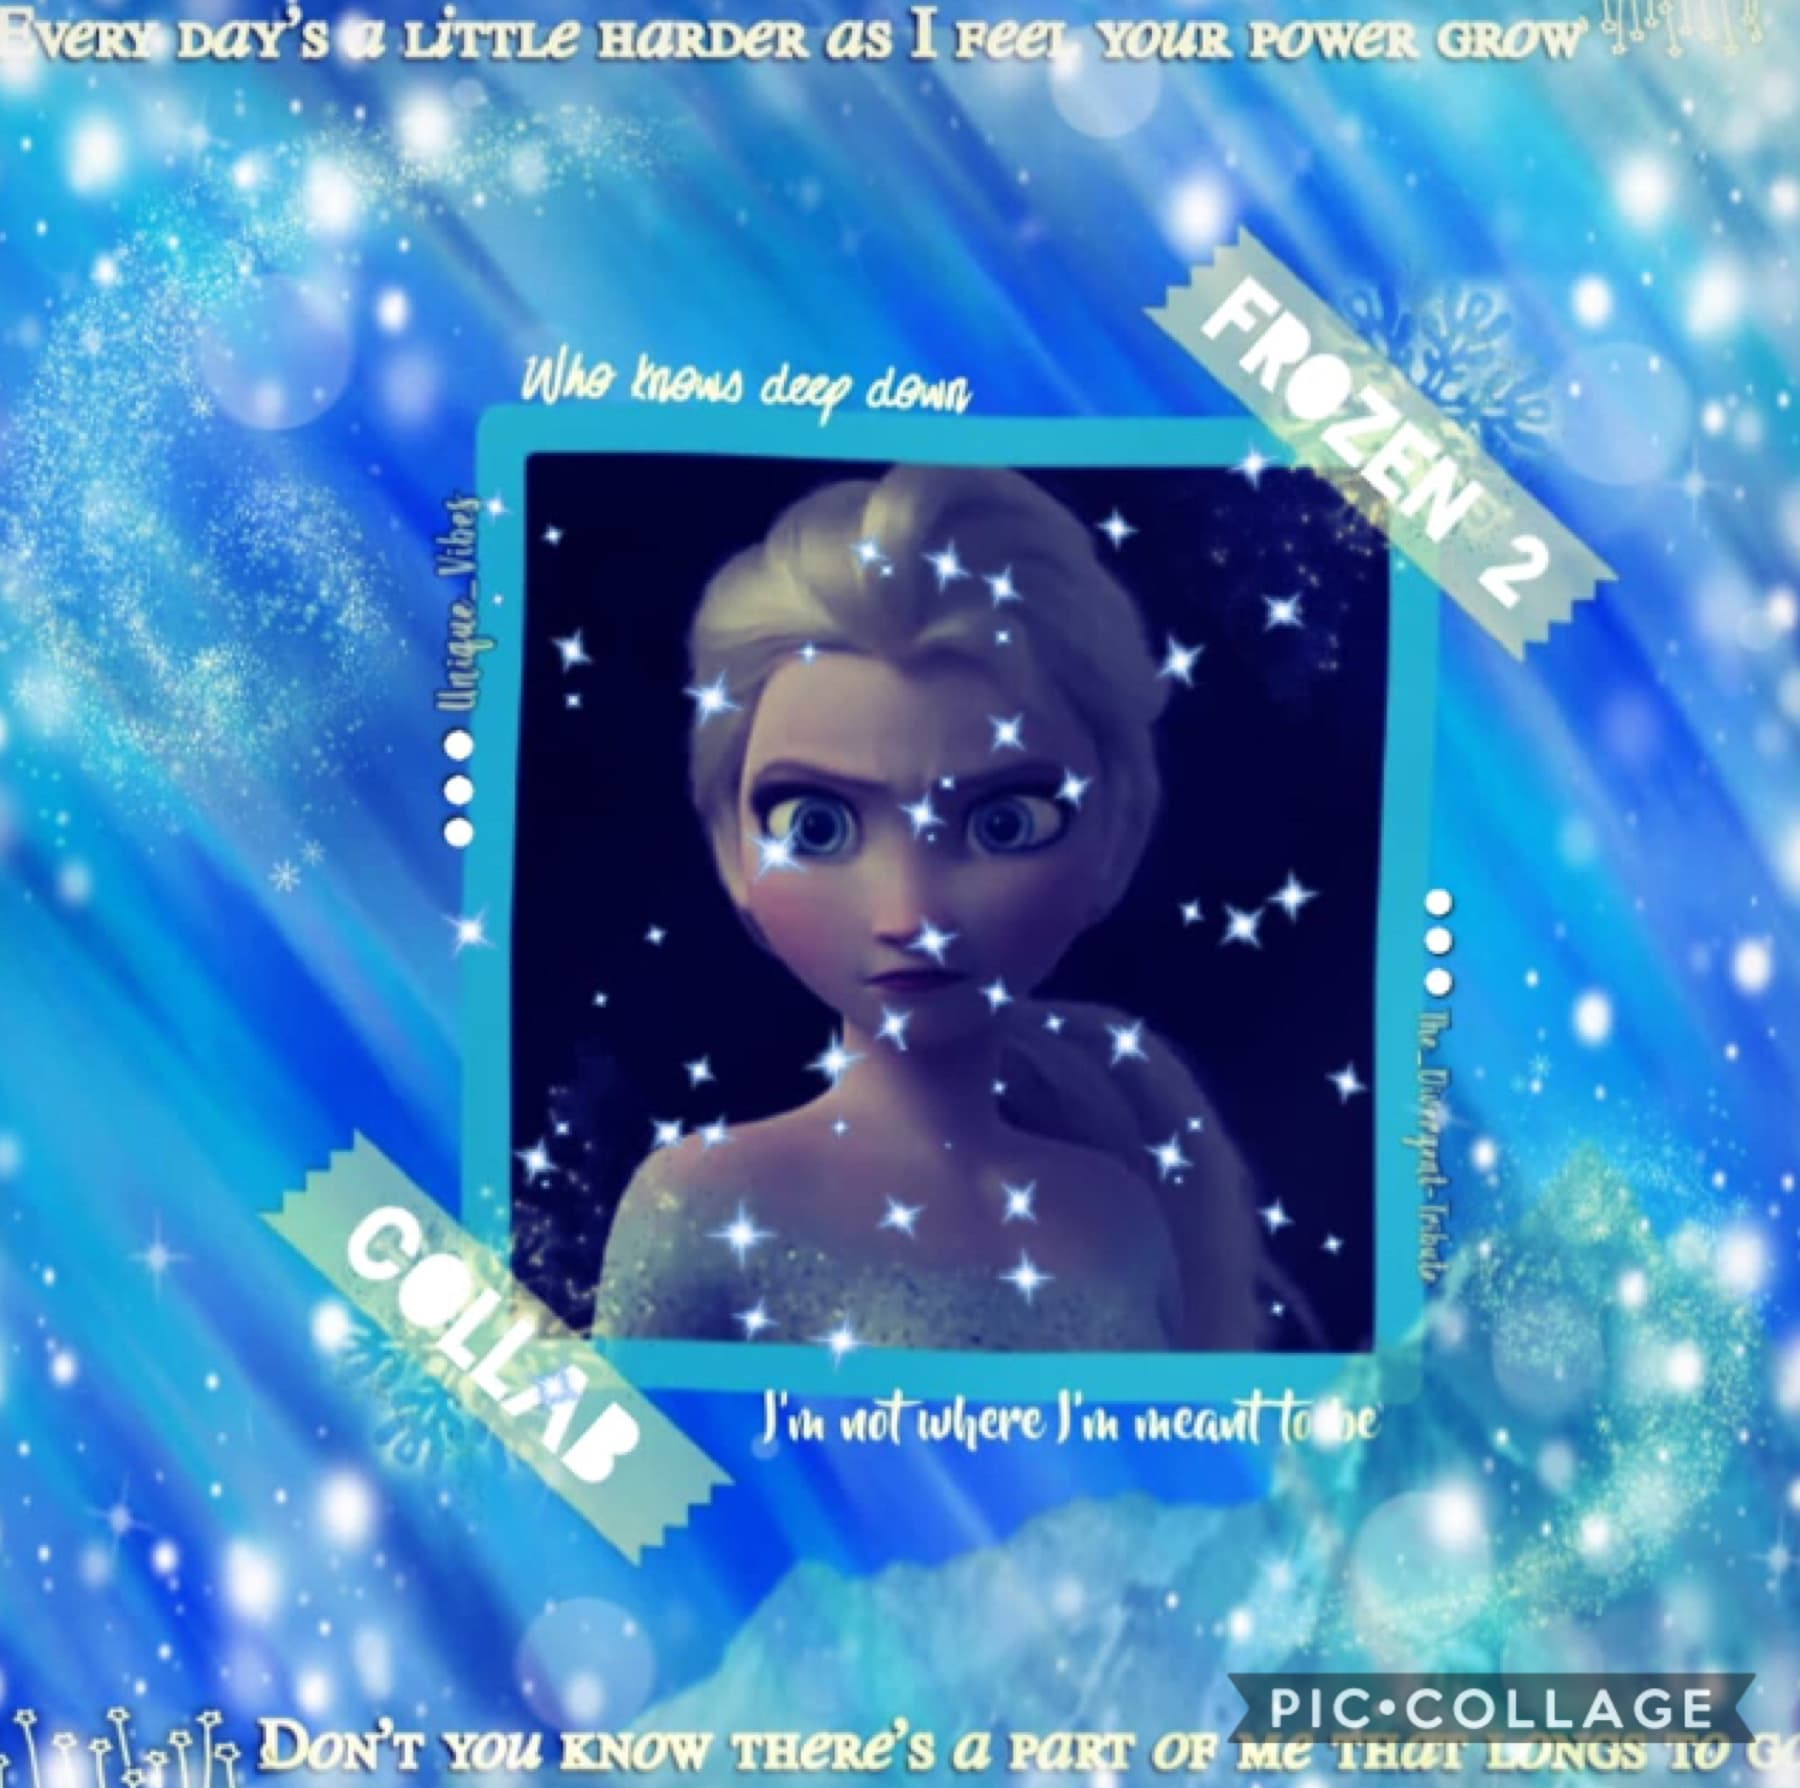 Collab with the amazing.... Divergent-tribute sorry if I spelt ur username wrong anyway Frozen two it is brilliant I did the background and she did the great text Qotd: have you seen Frozen 2 Aotd: yes and I love it